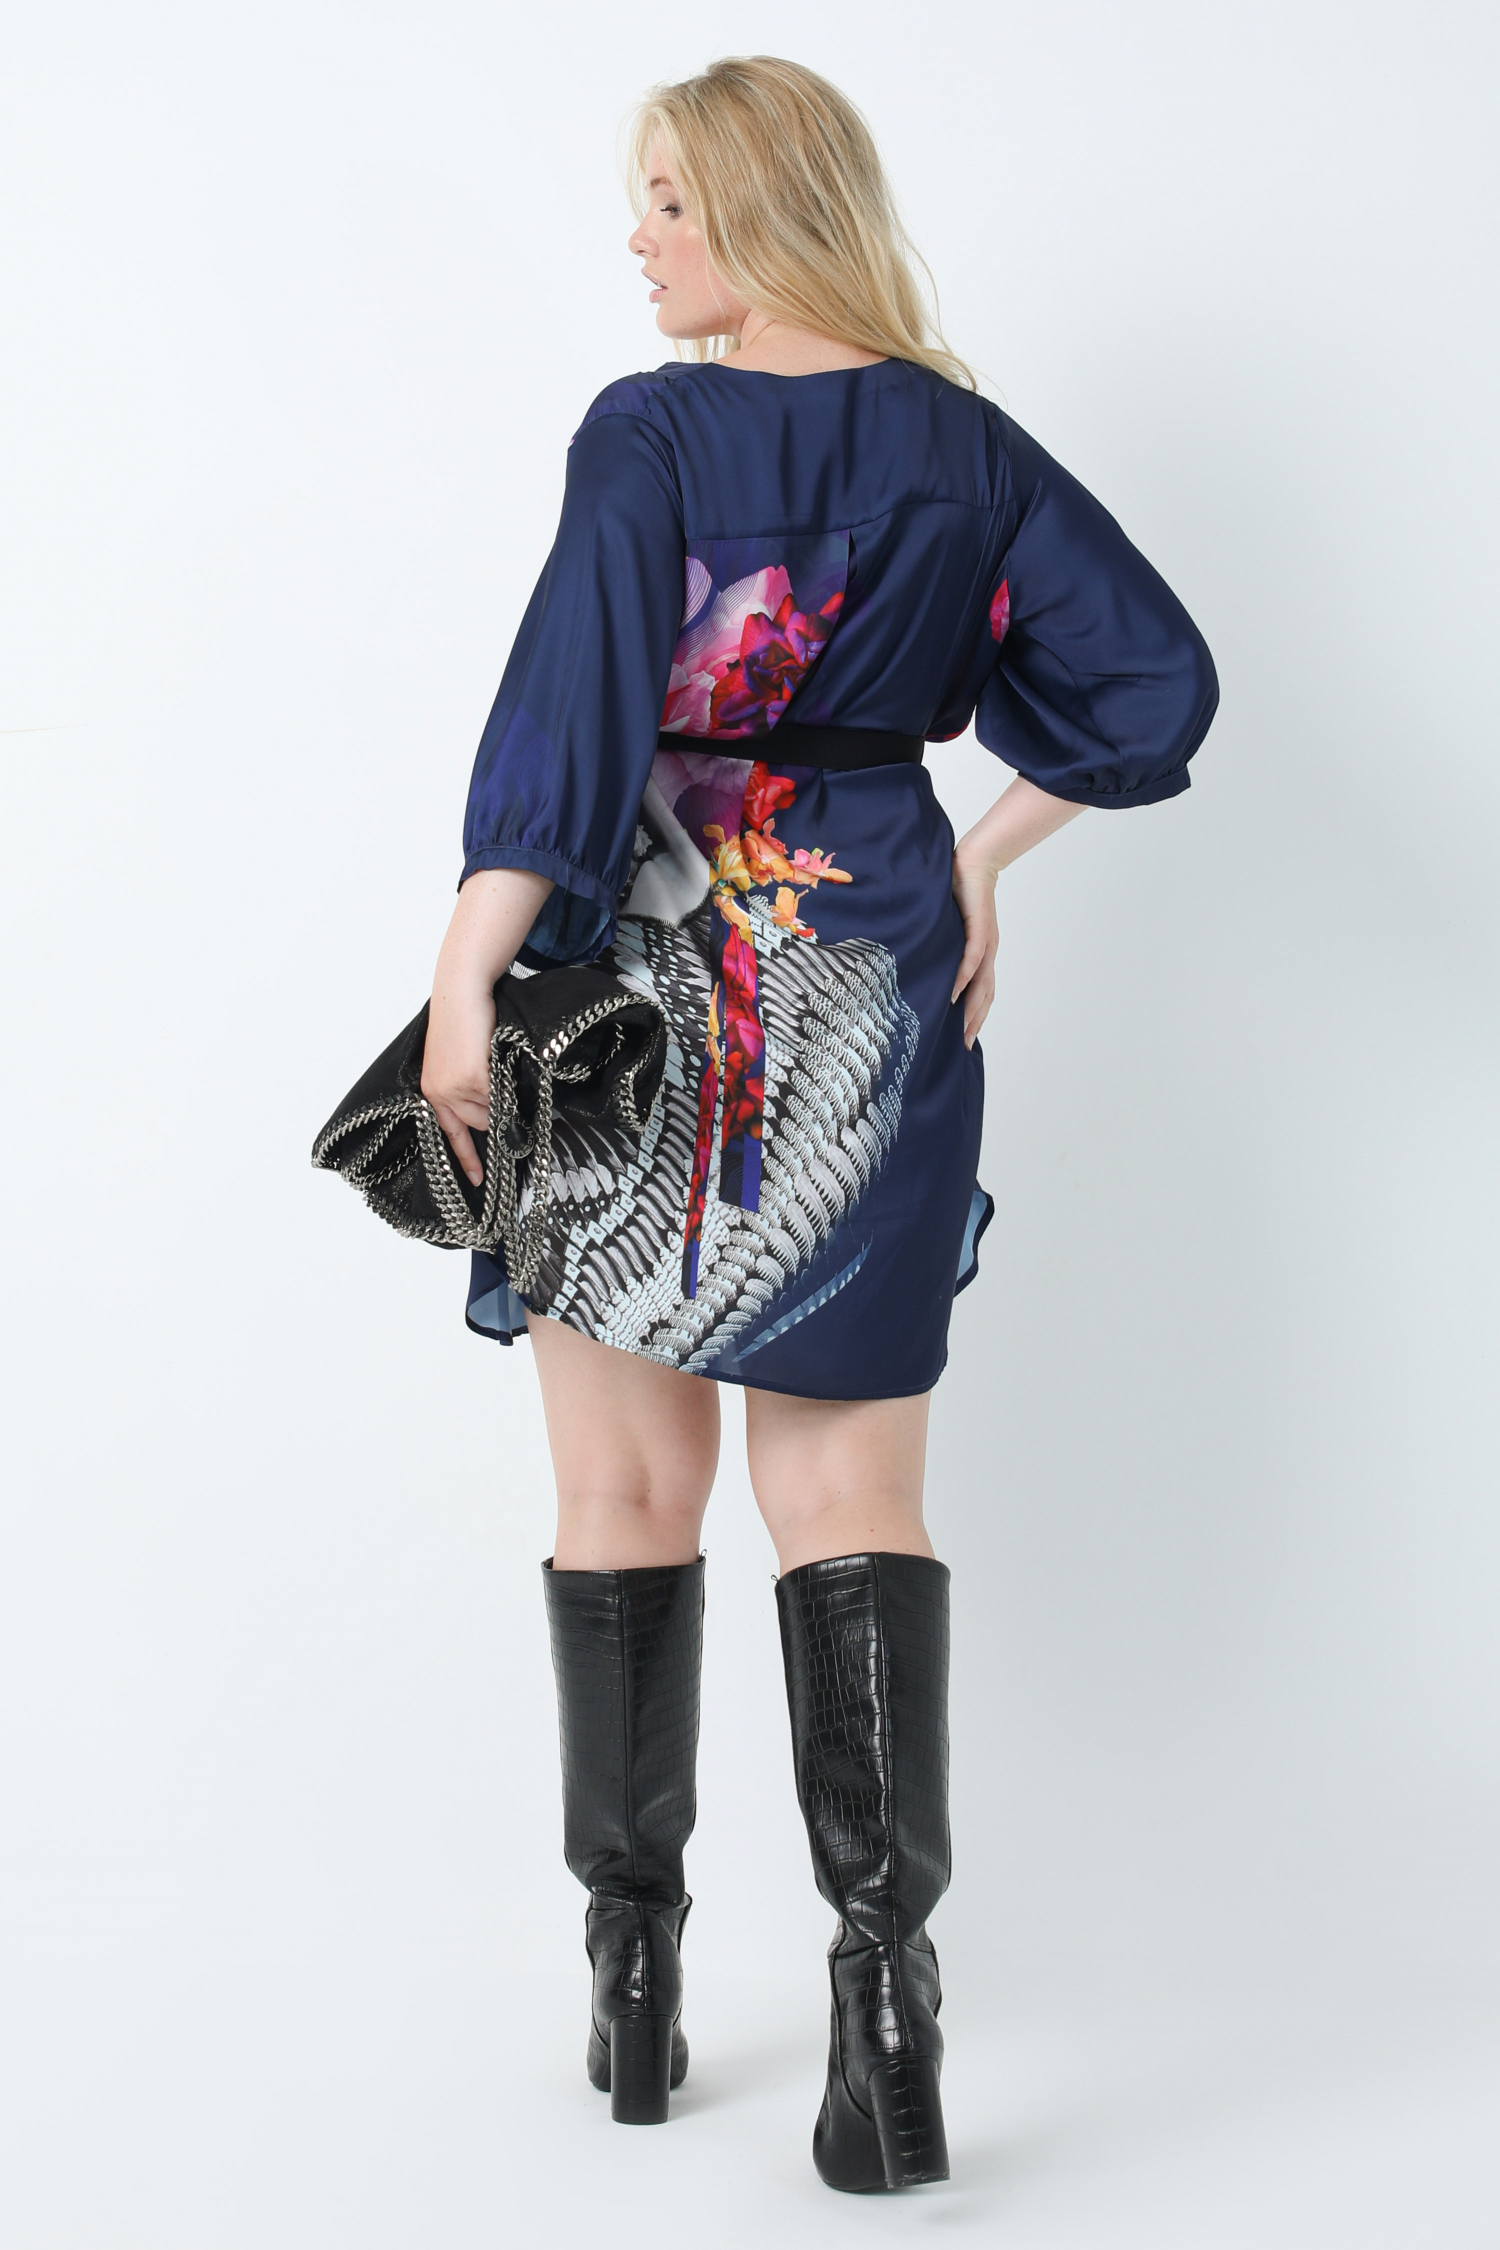 Long satin shirt with design placed in oeko-tex fabric